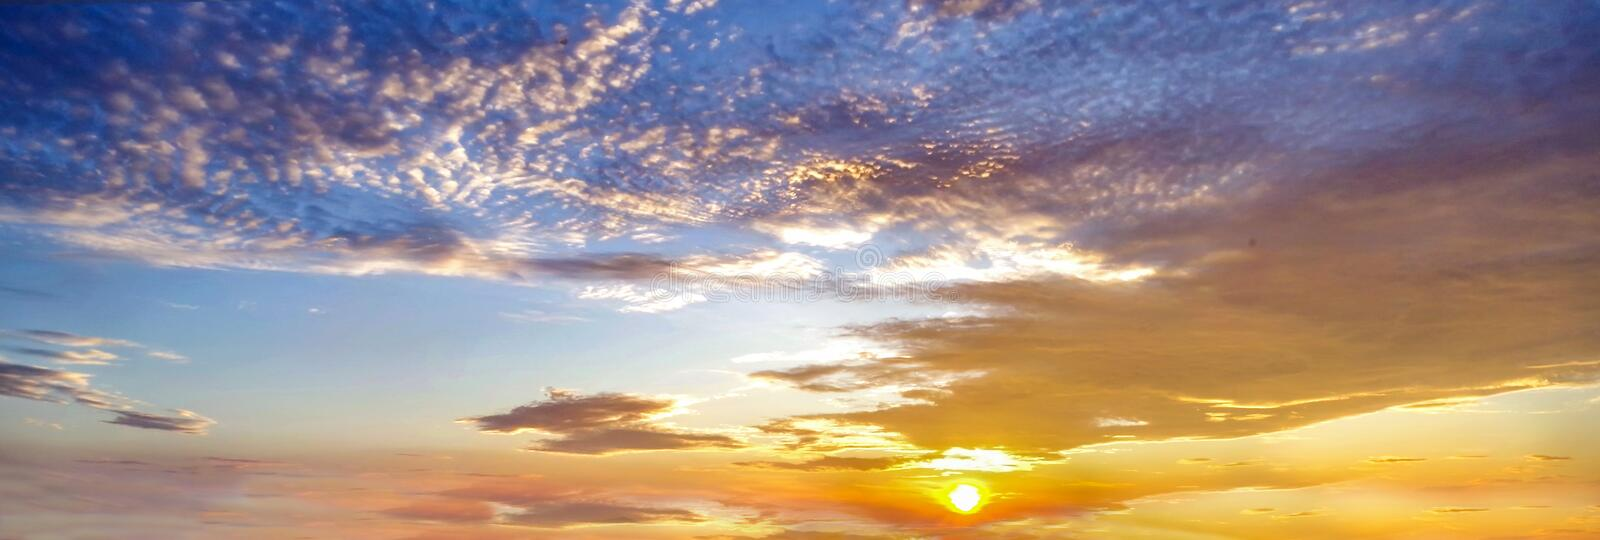 Background with magic of the clouds and the sky at the dawn, sunrise, sunset part 12 royalty free stock photography